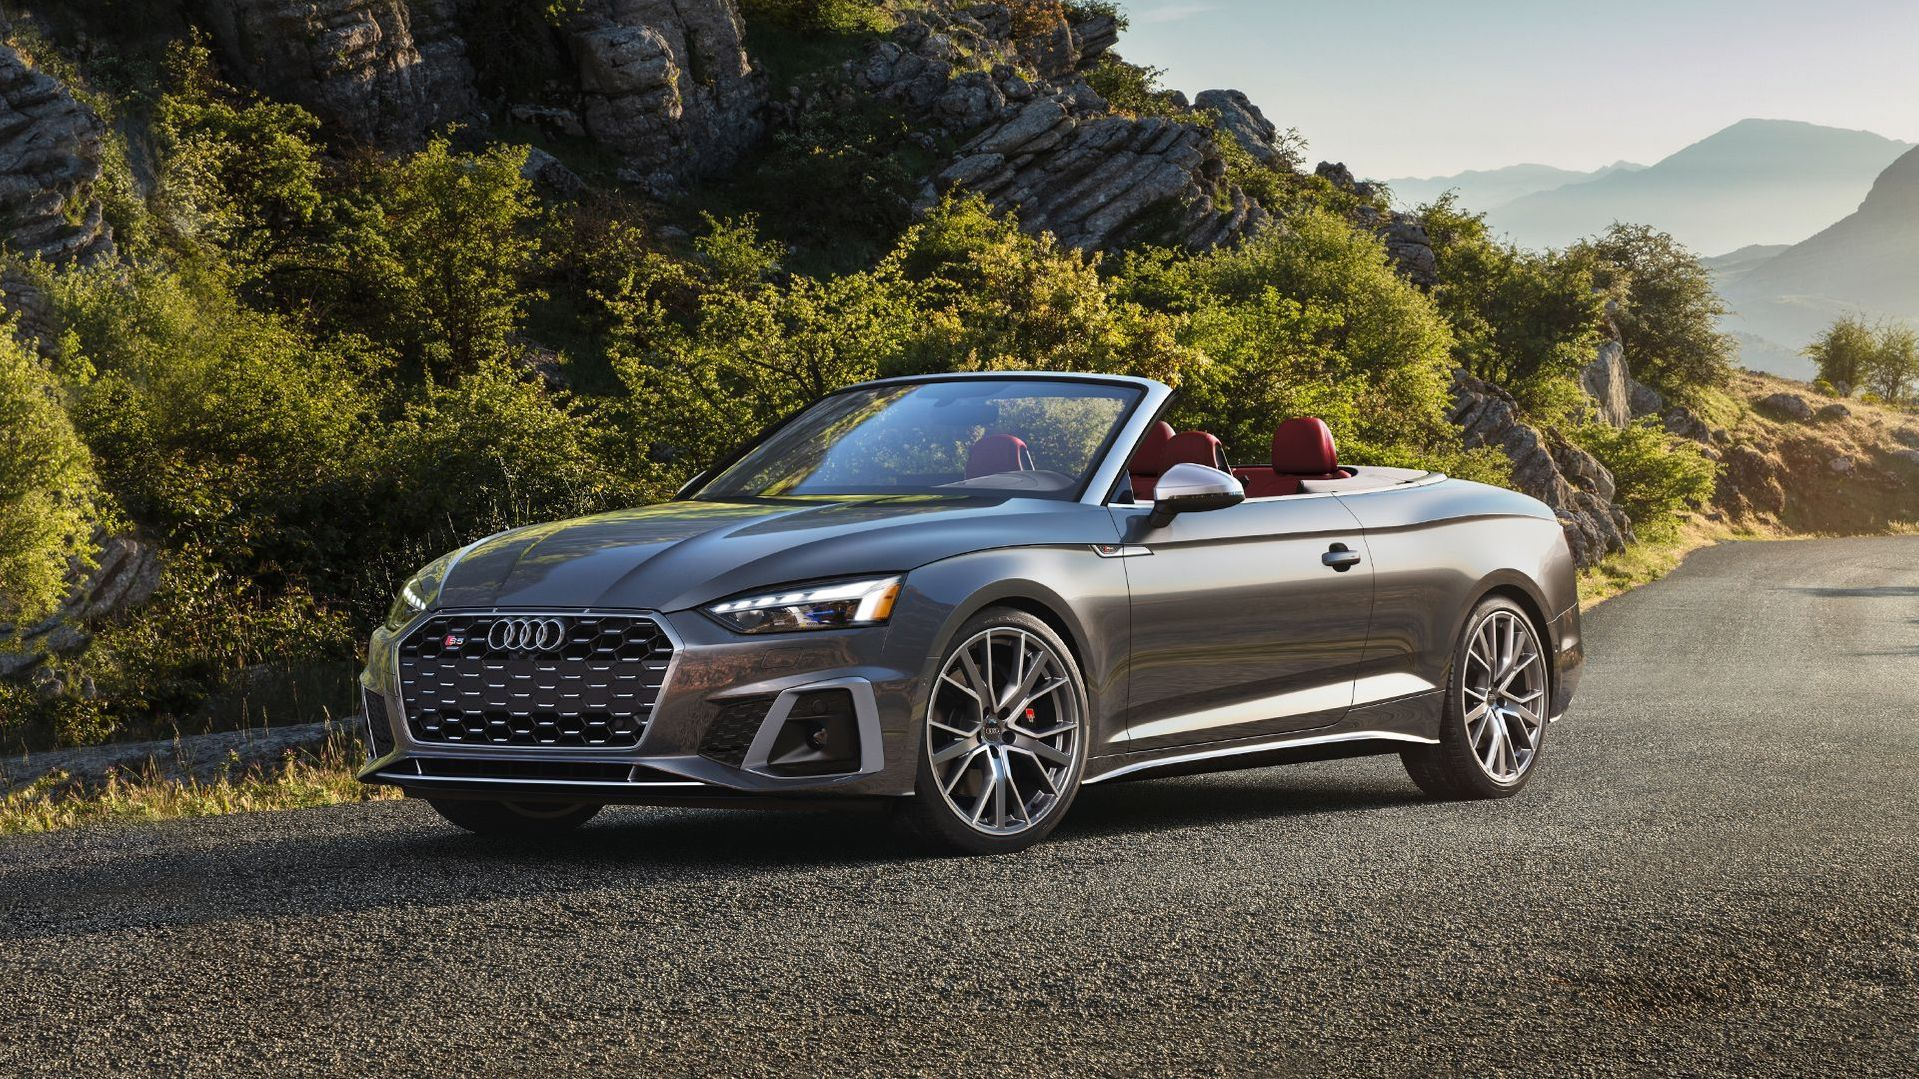 2021 Audi S5 Cabriolet Wallpaper